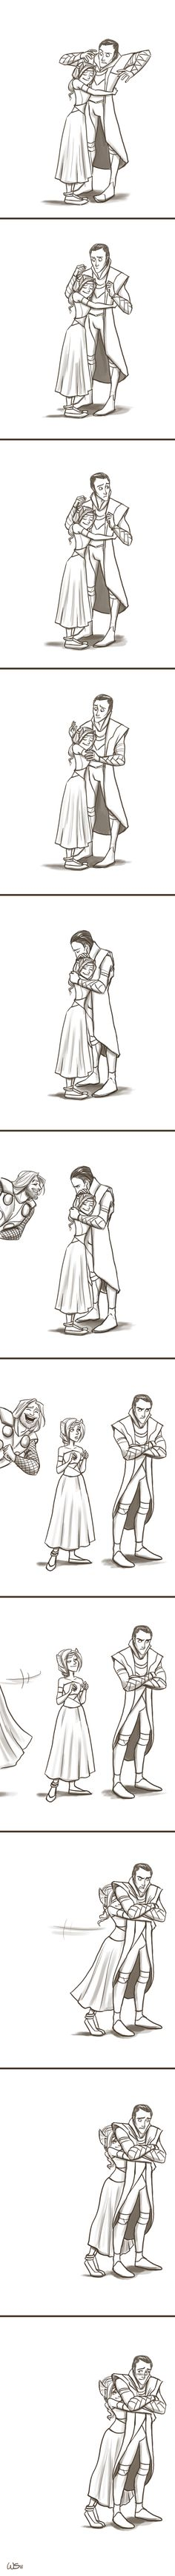 TOO adorable. I want Sigyn to appear in Thor 2. Please...